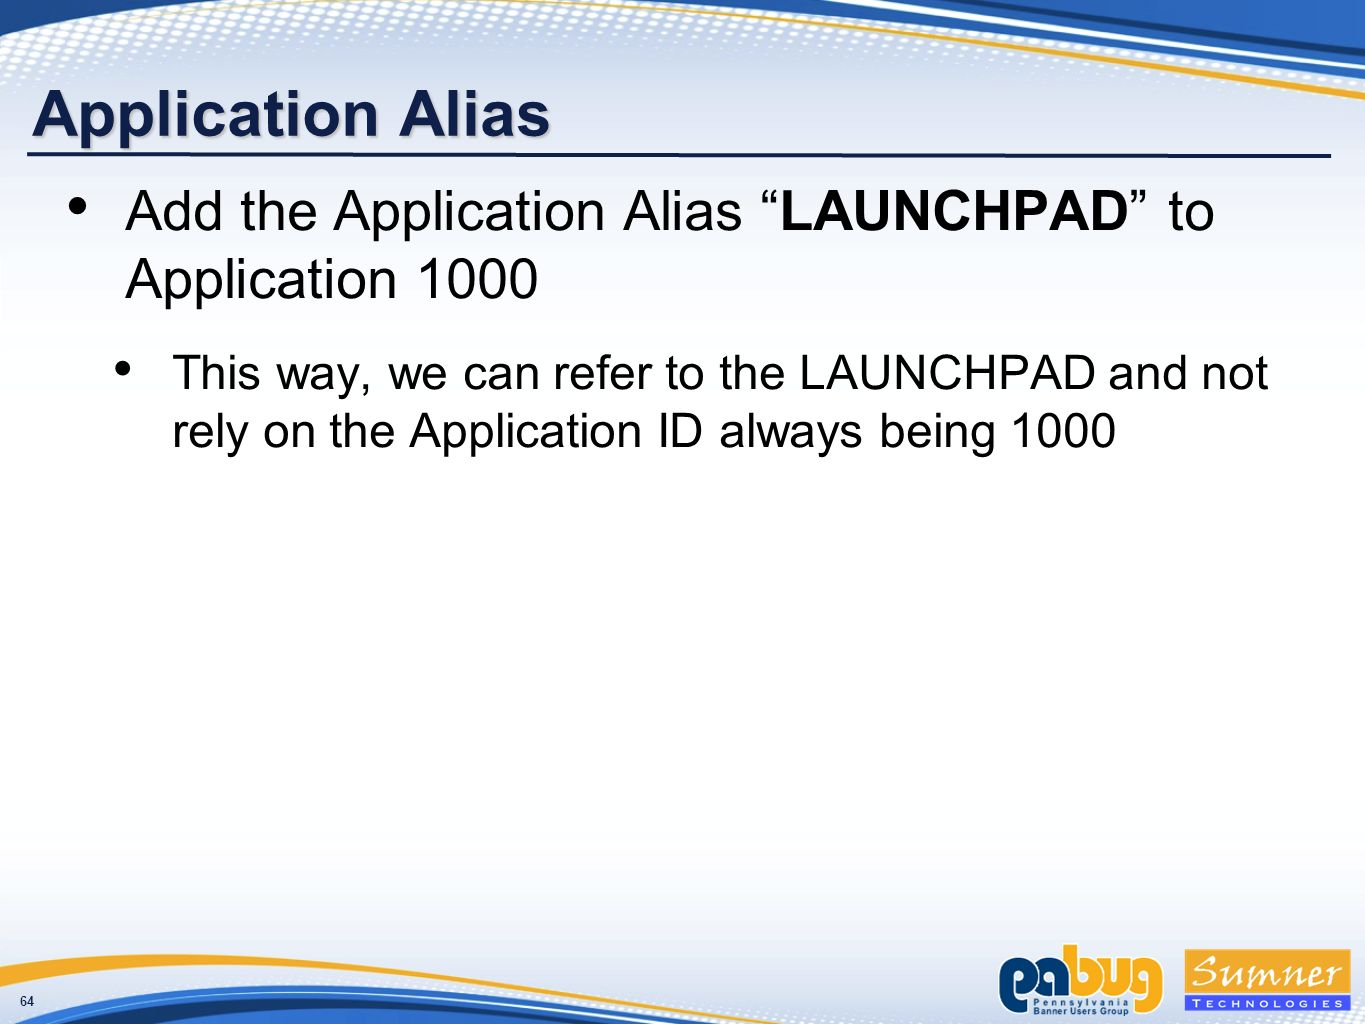 64 Application Alias Add the Application Alias LAUNCHPAD to Application 1000 This way, we can refer to the LAUNCHPAD and not rely on the Application ID always being 1000